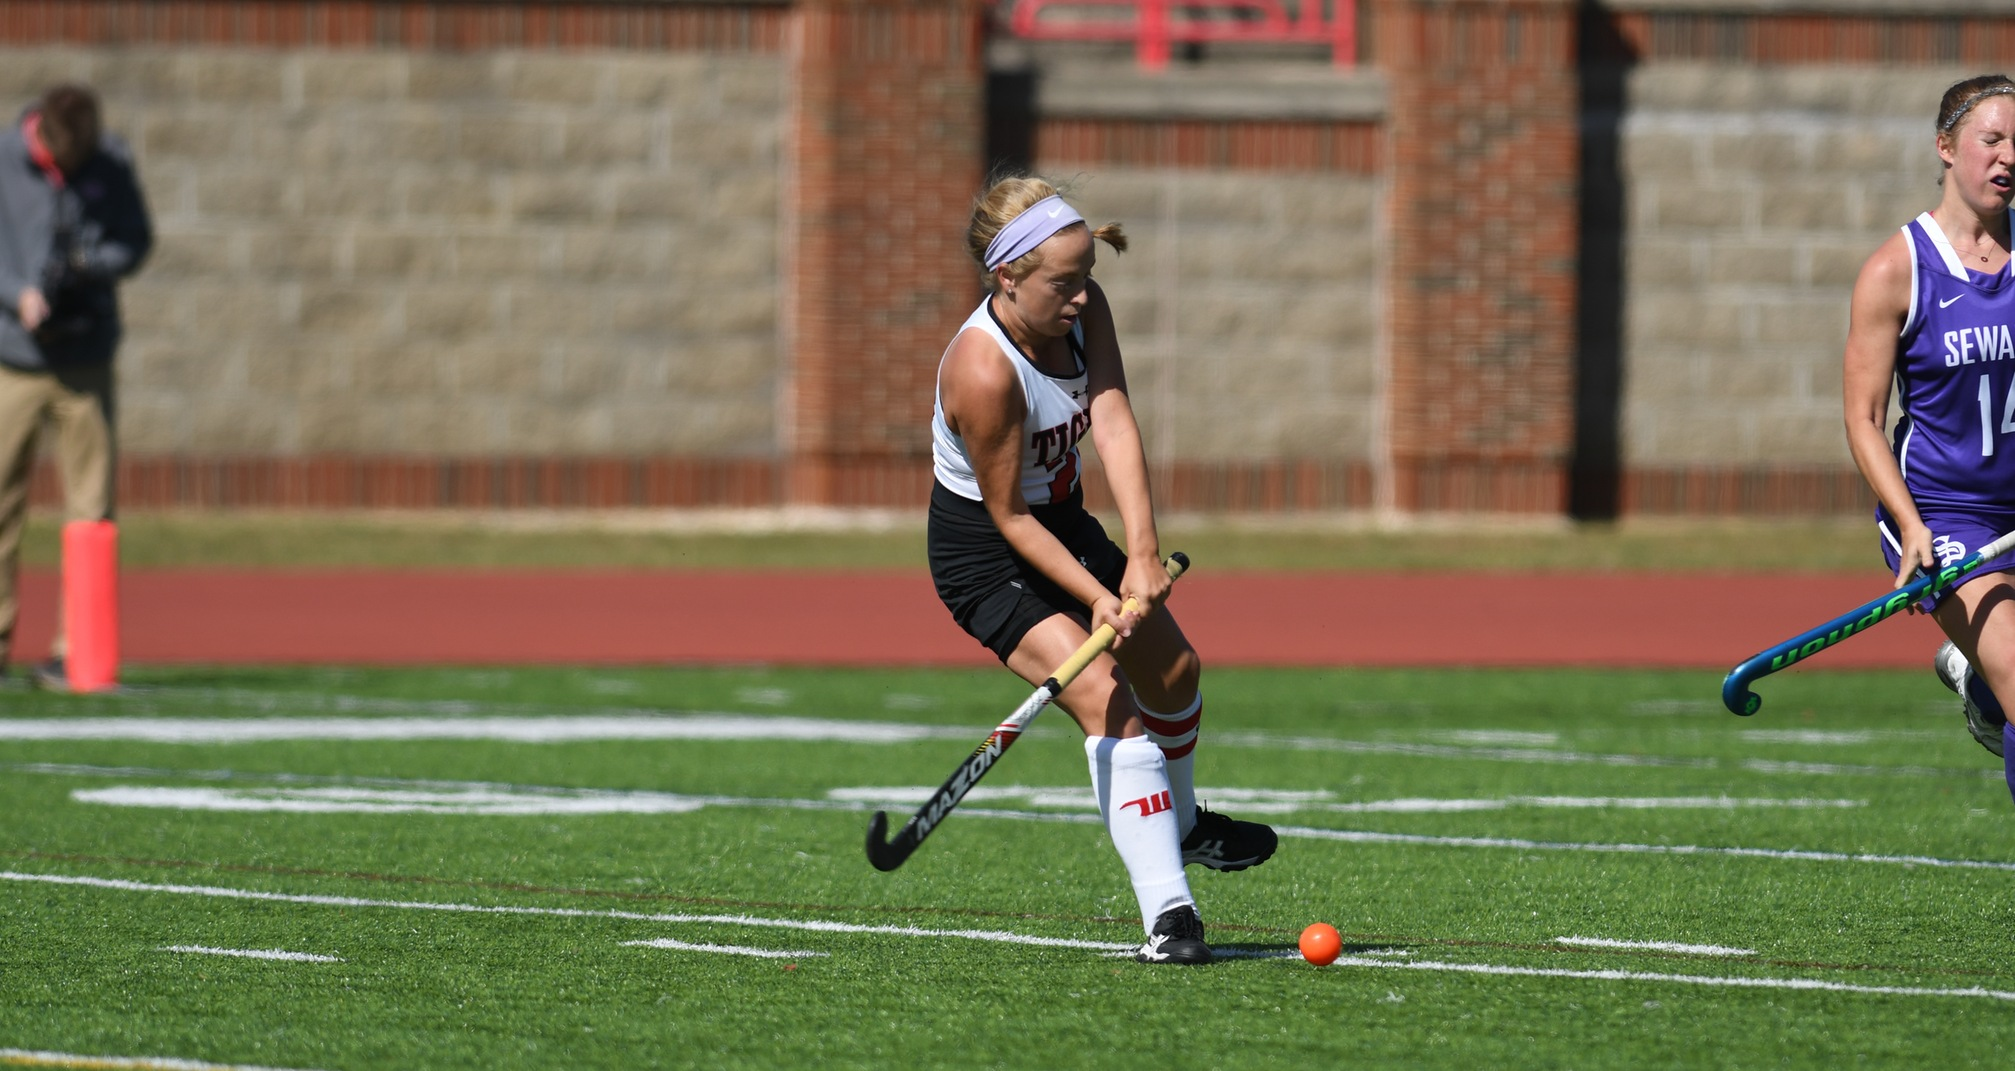 Wittenberg Field Hockey Earns The Shutout At DePauw